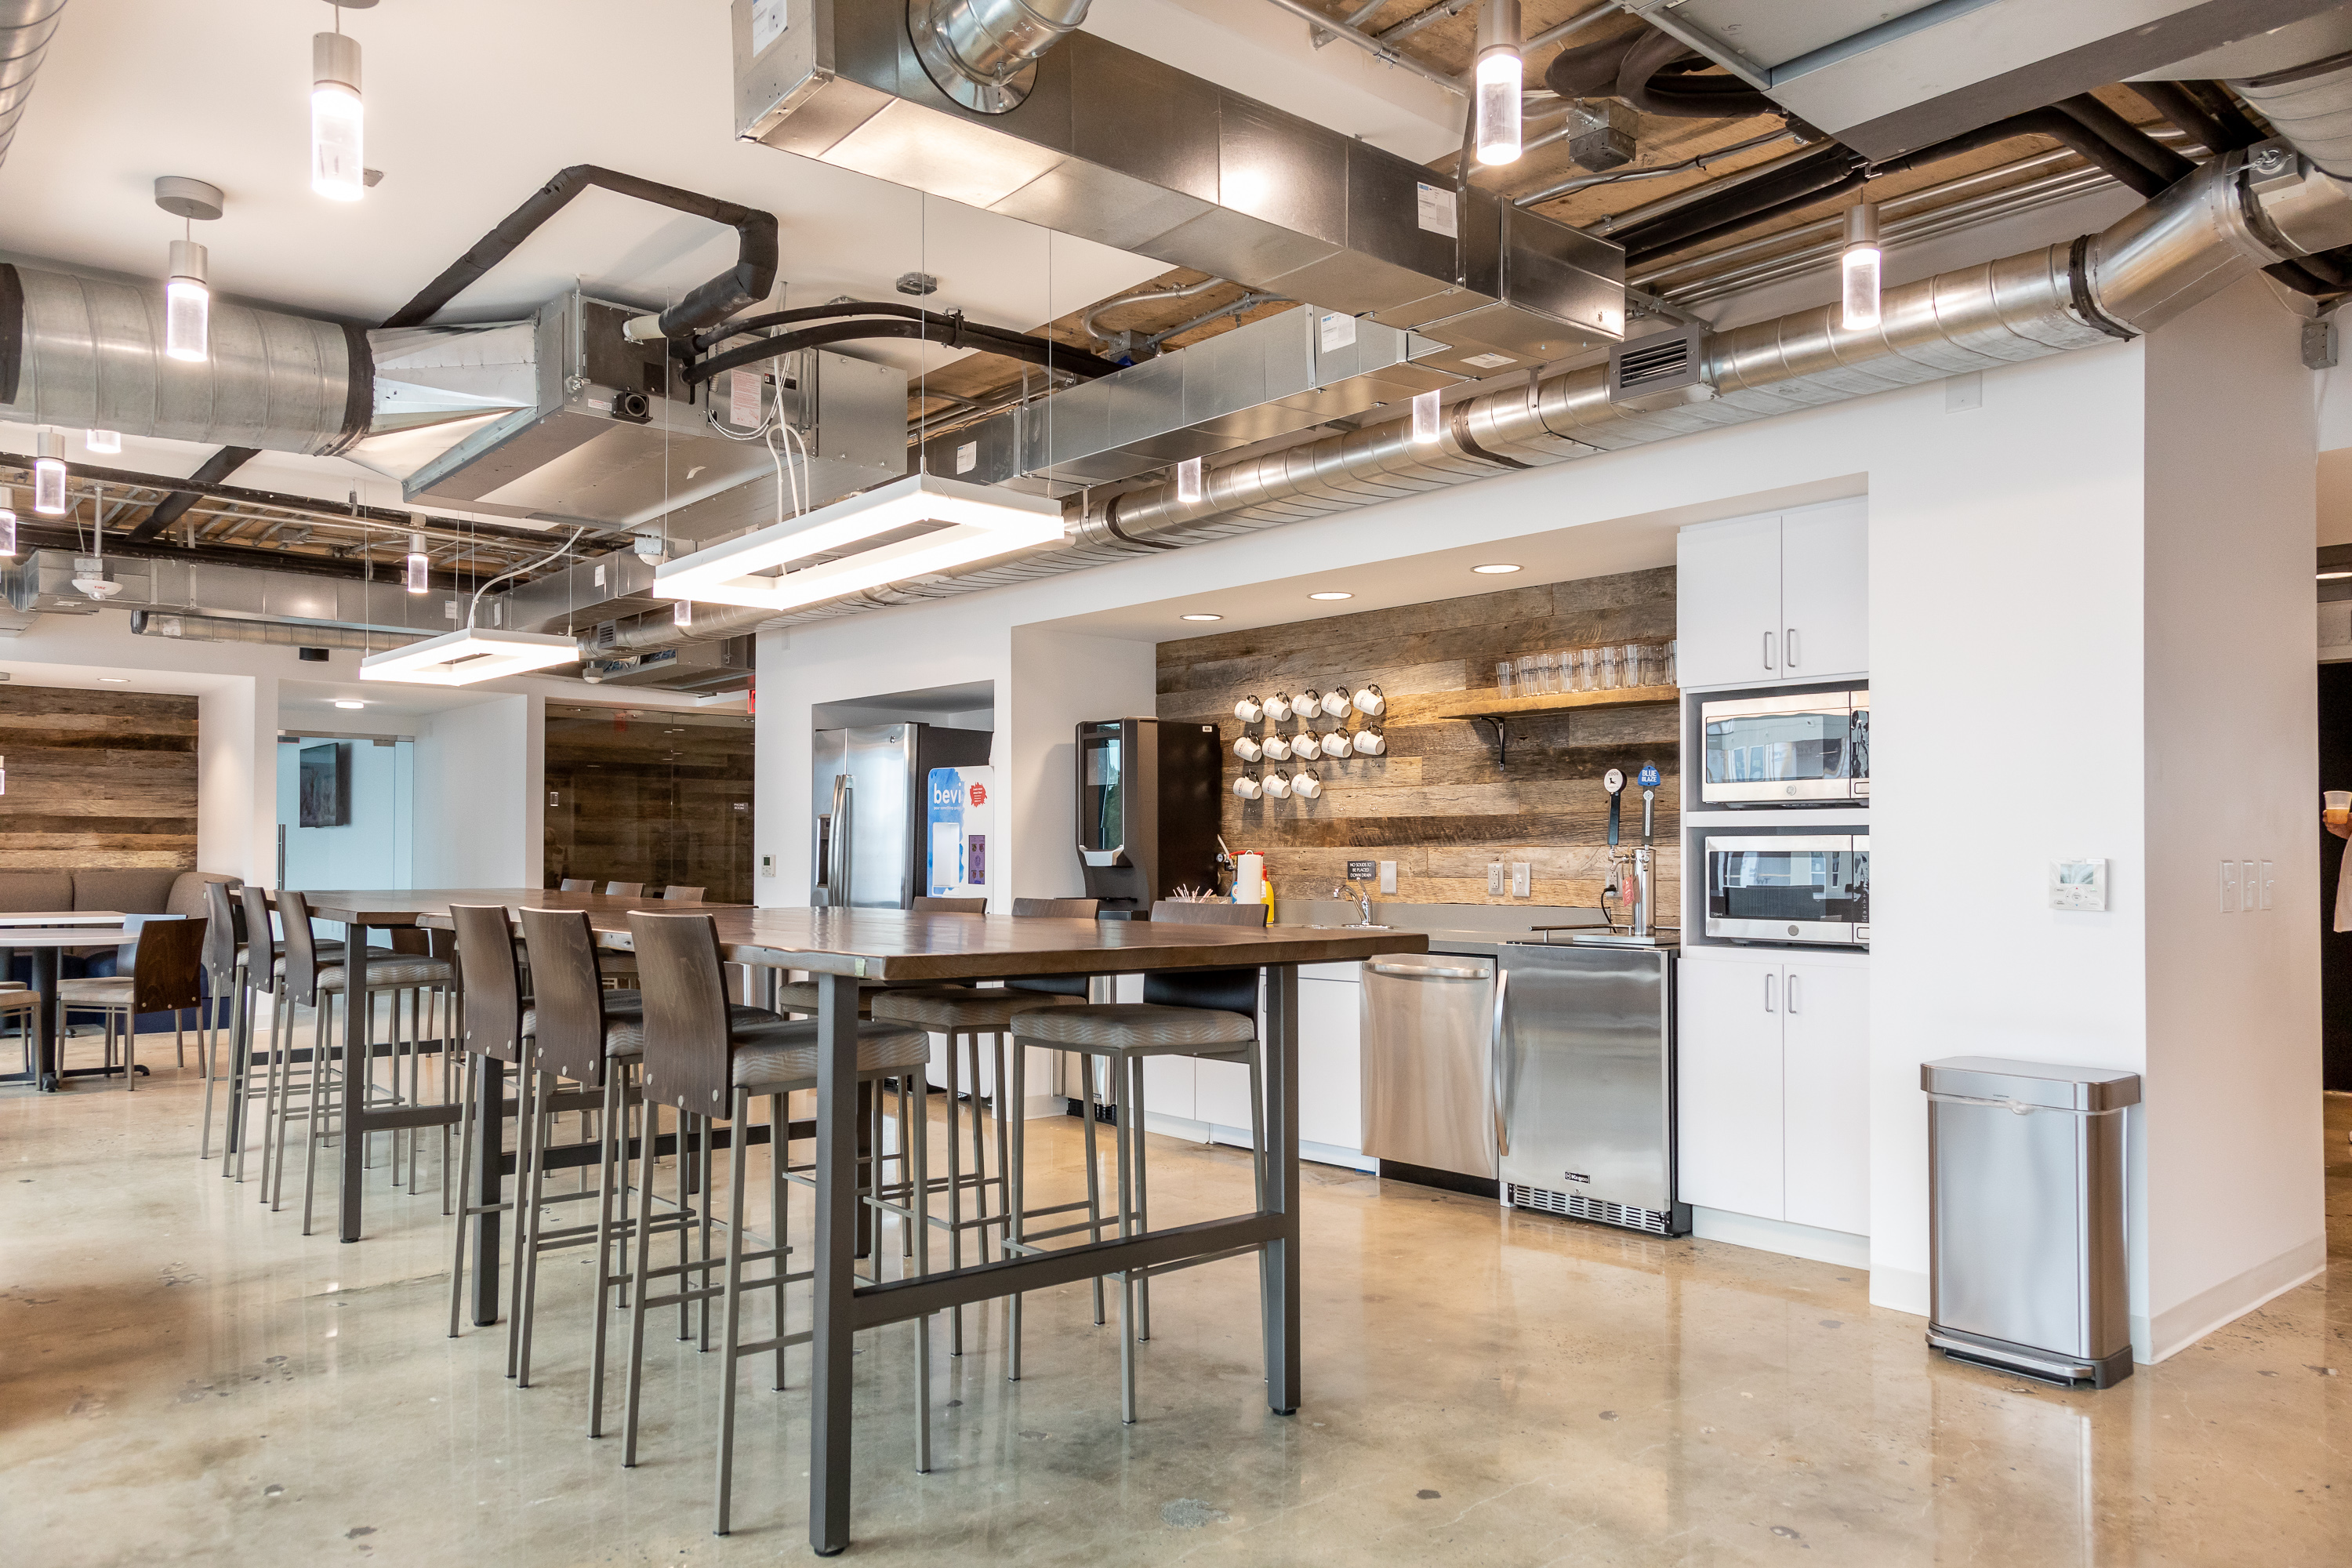 coworking space with tables